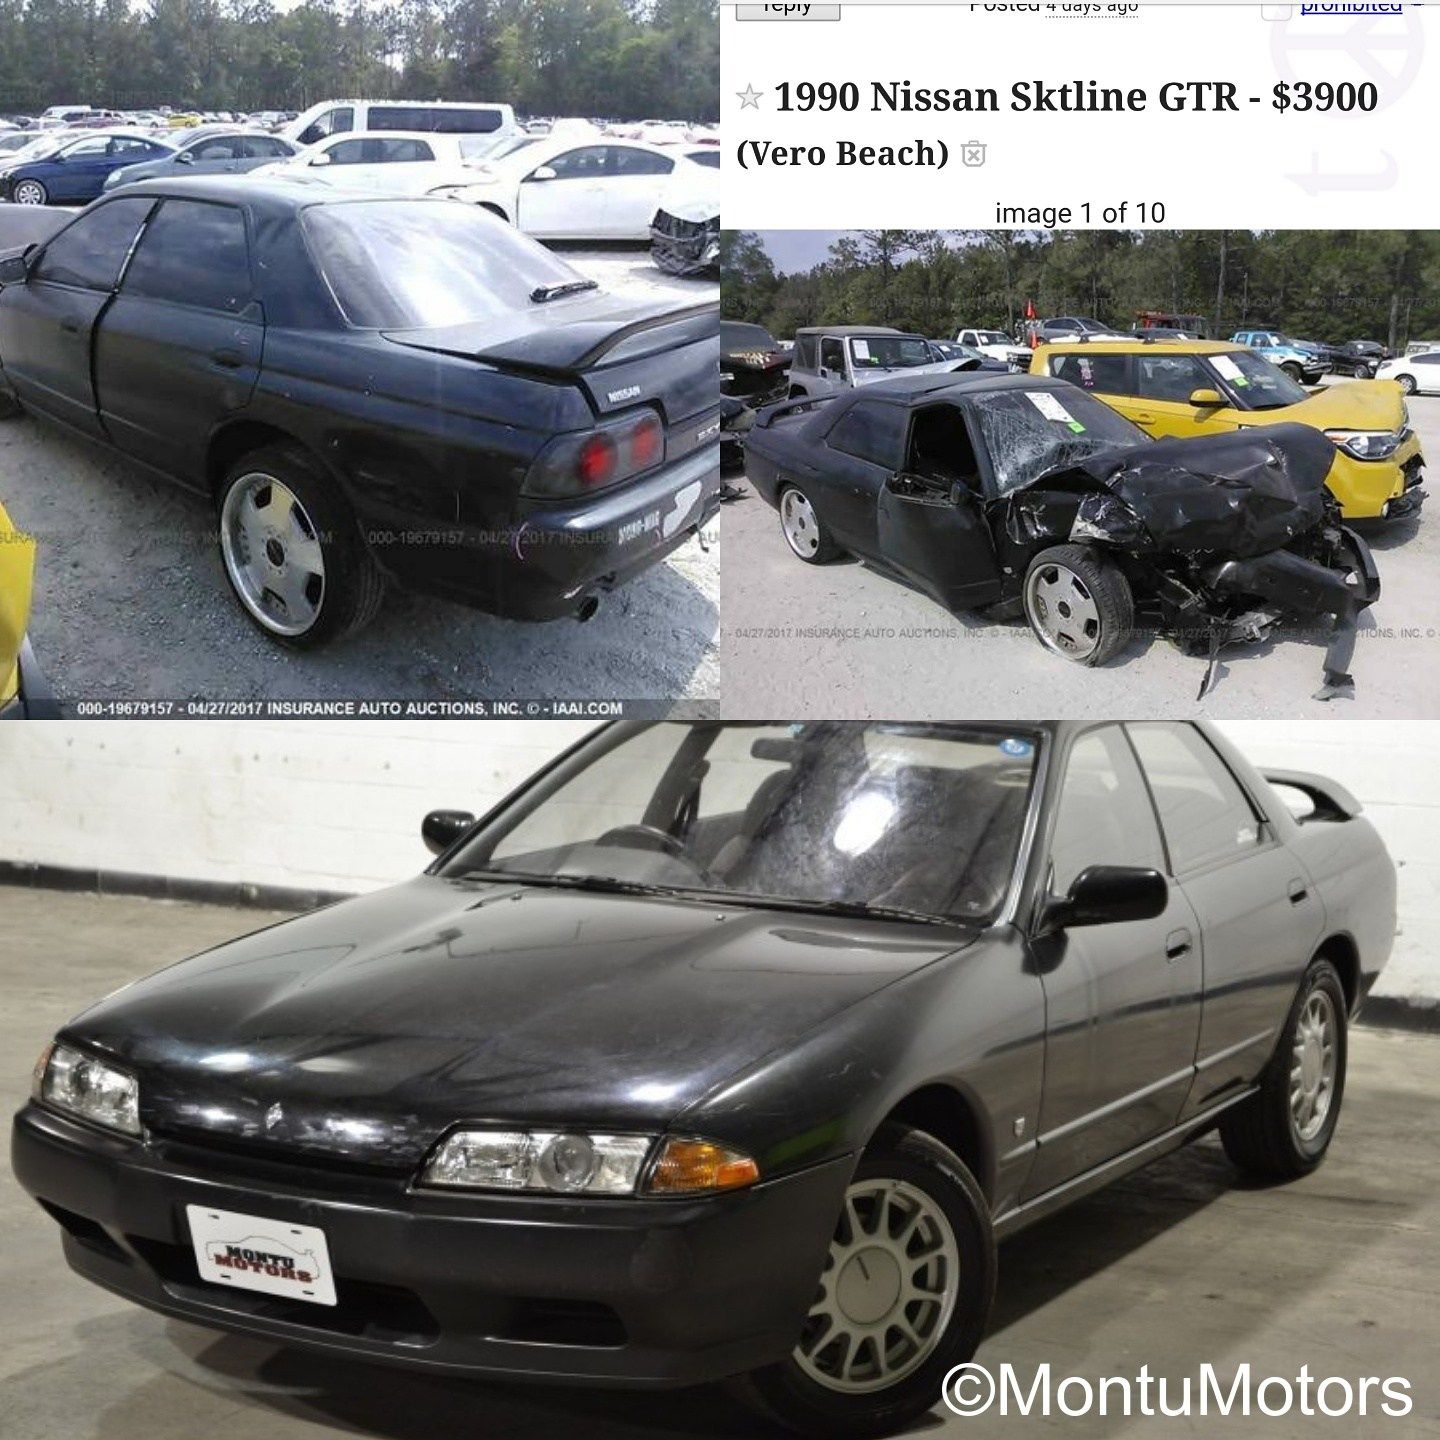 Our customer s nissan skyline is for sale on vero beach fl craigslist if anyone is interested